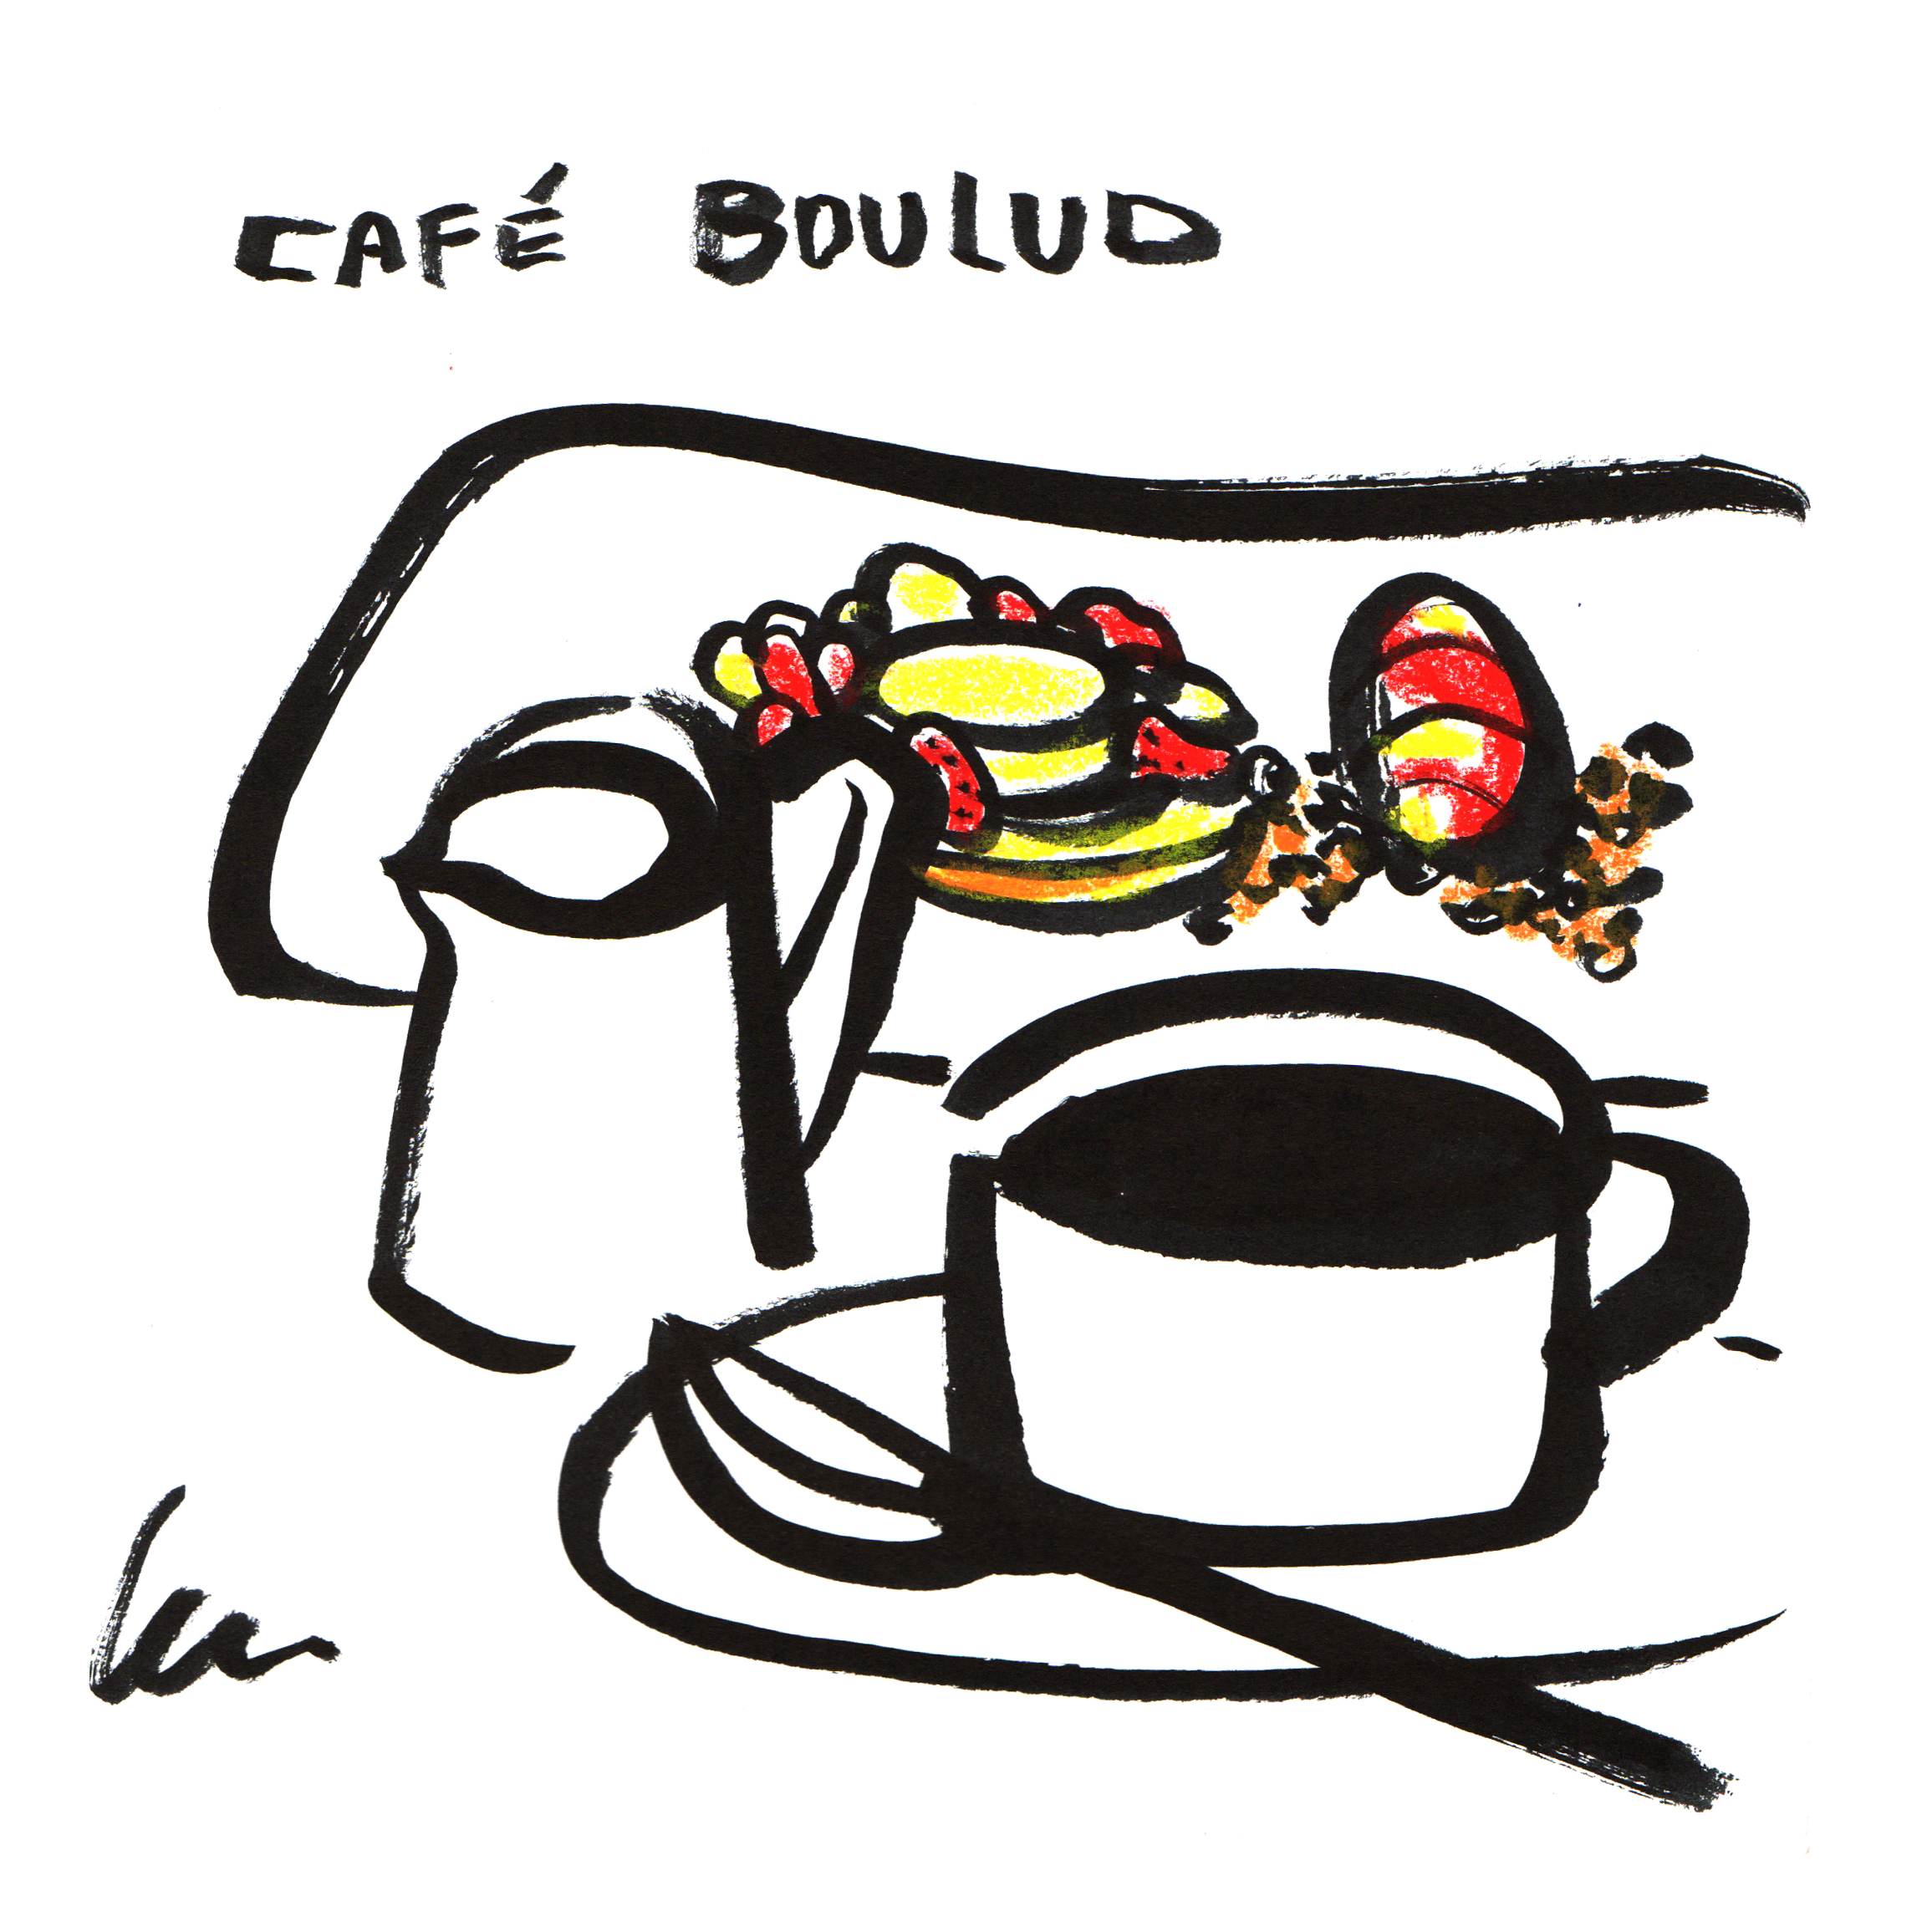 Cafe Boulud 3.jpeg